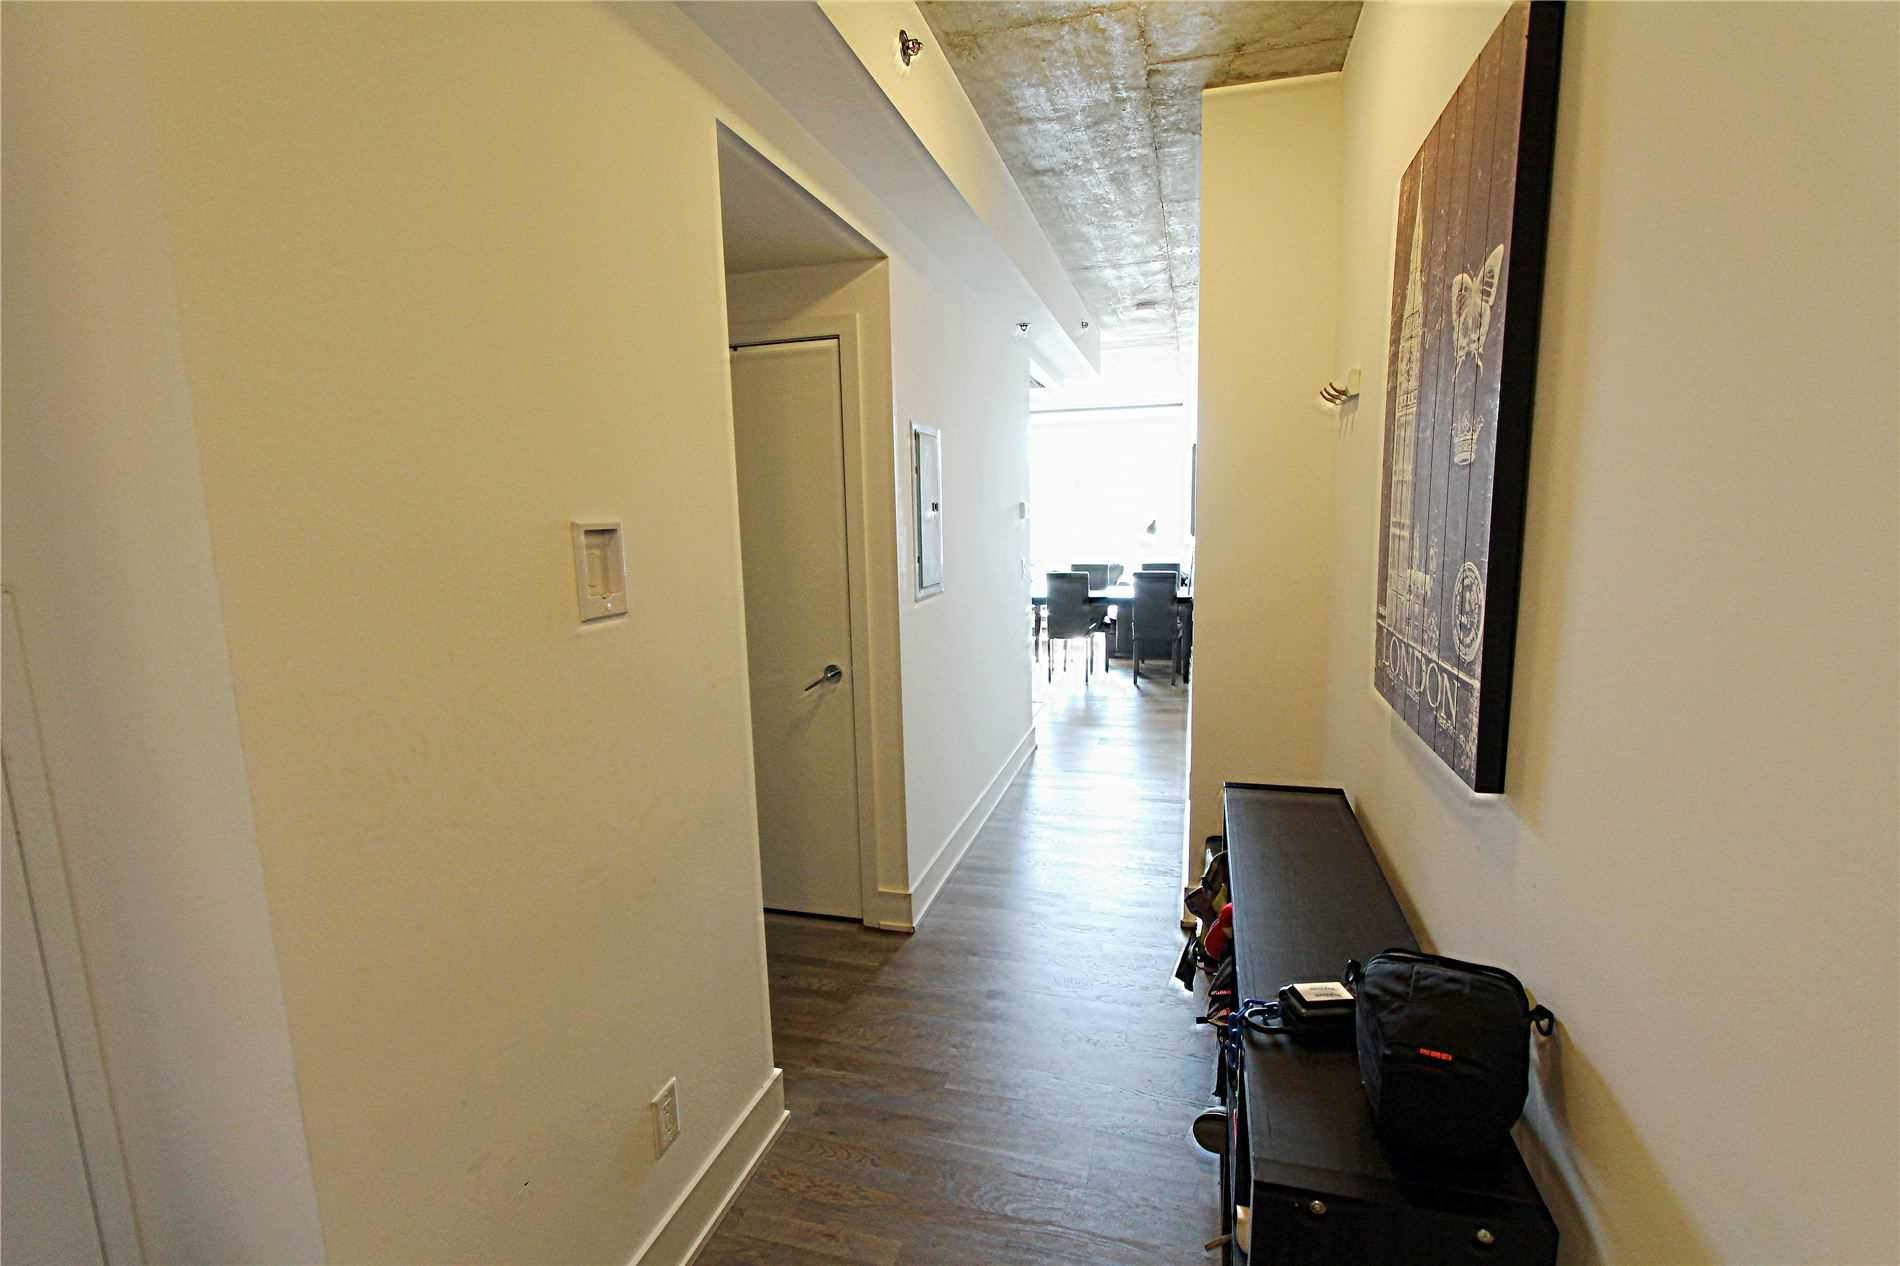 630 Queen St E, unit 301 for rent in Toronto - image #2